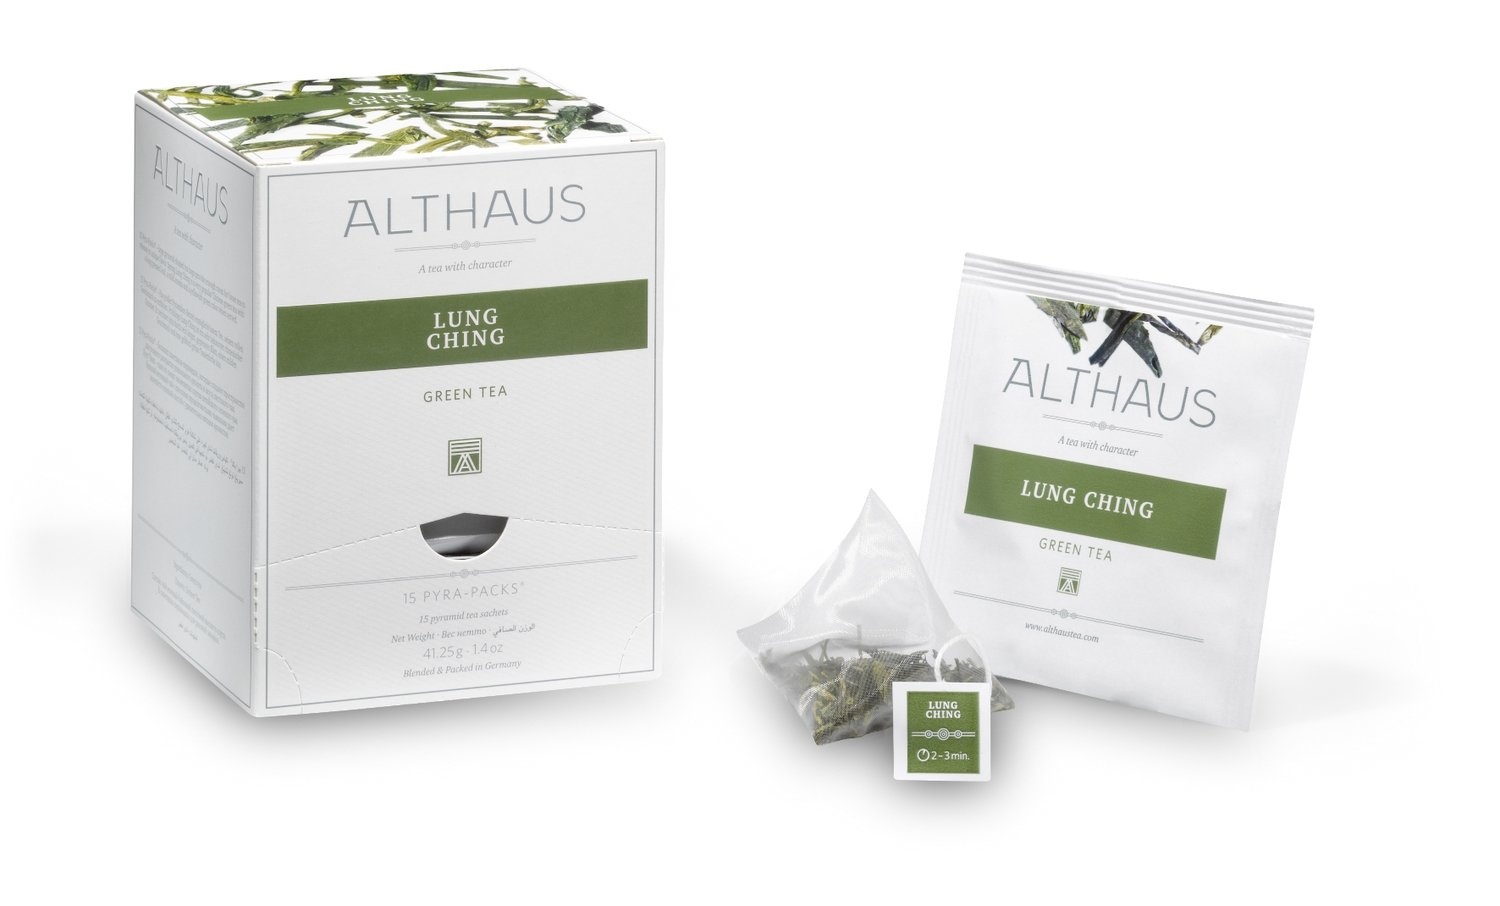 Althaus Pyra Pack Lung Ching